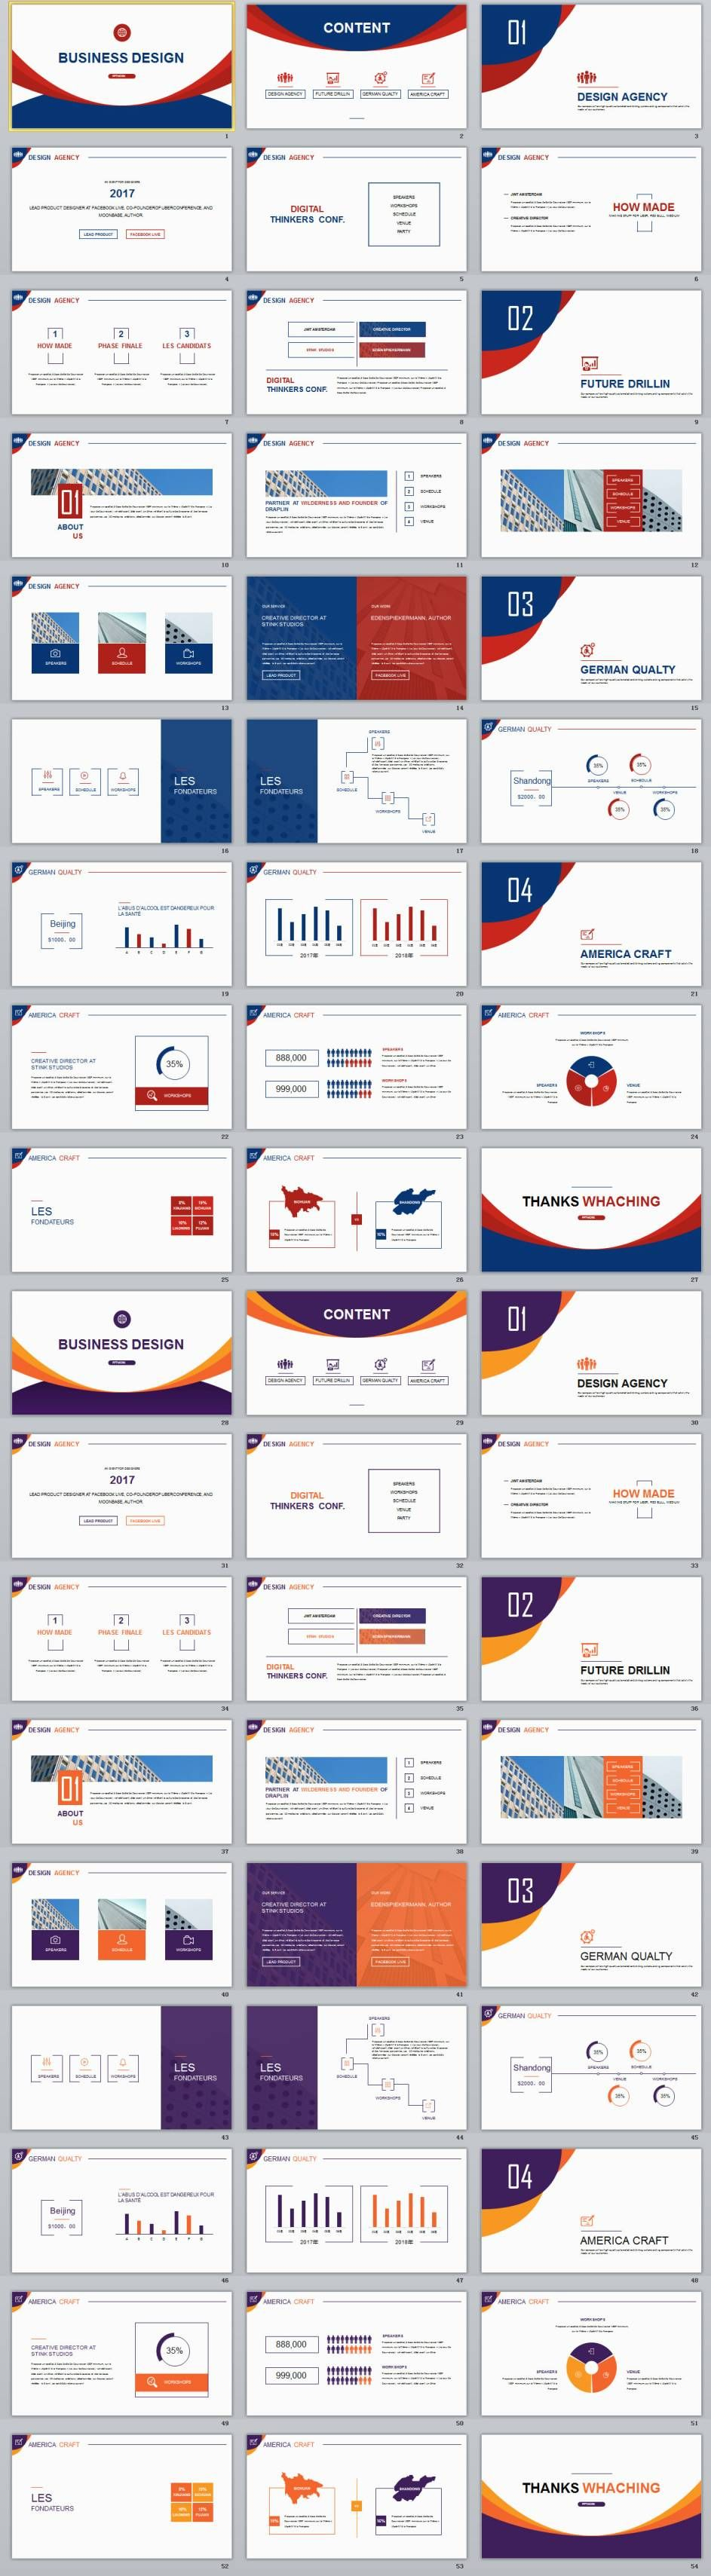 2 in 1 best multicolor business design powerpoint template, Modern powerpoint